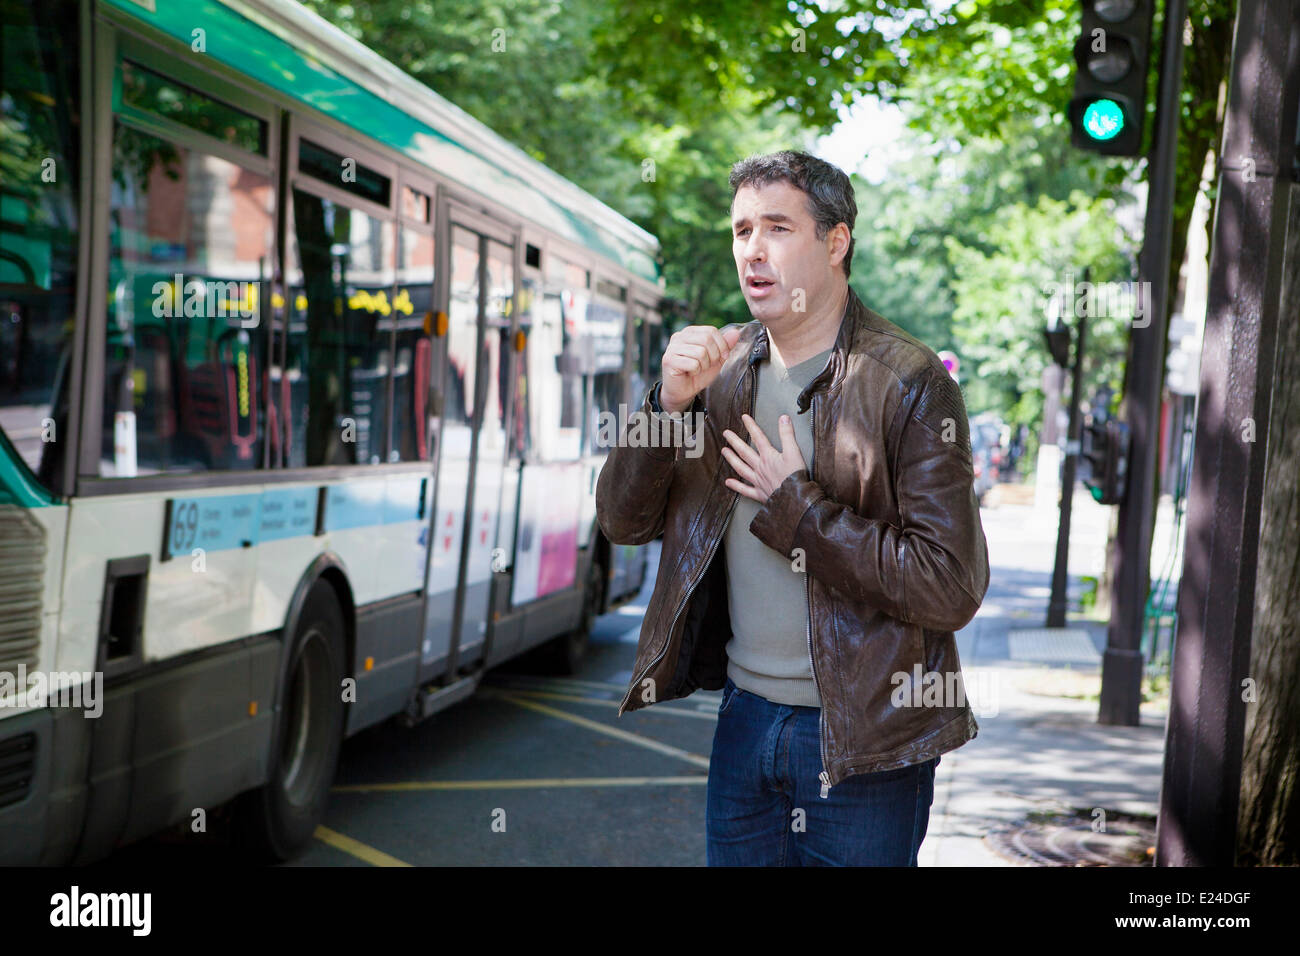 Air pollution - Stock Image